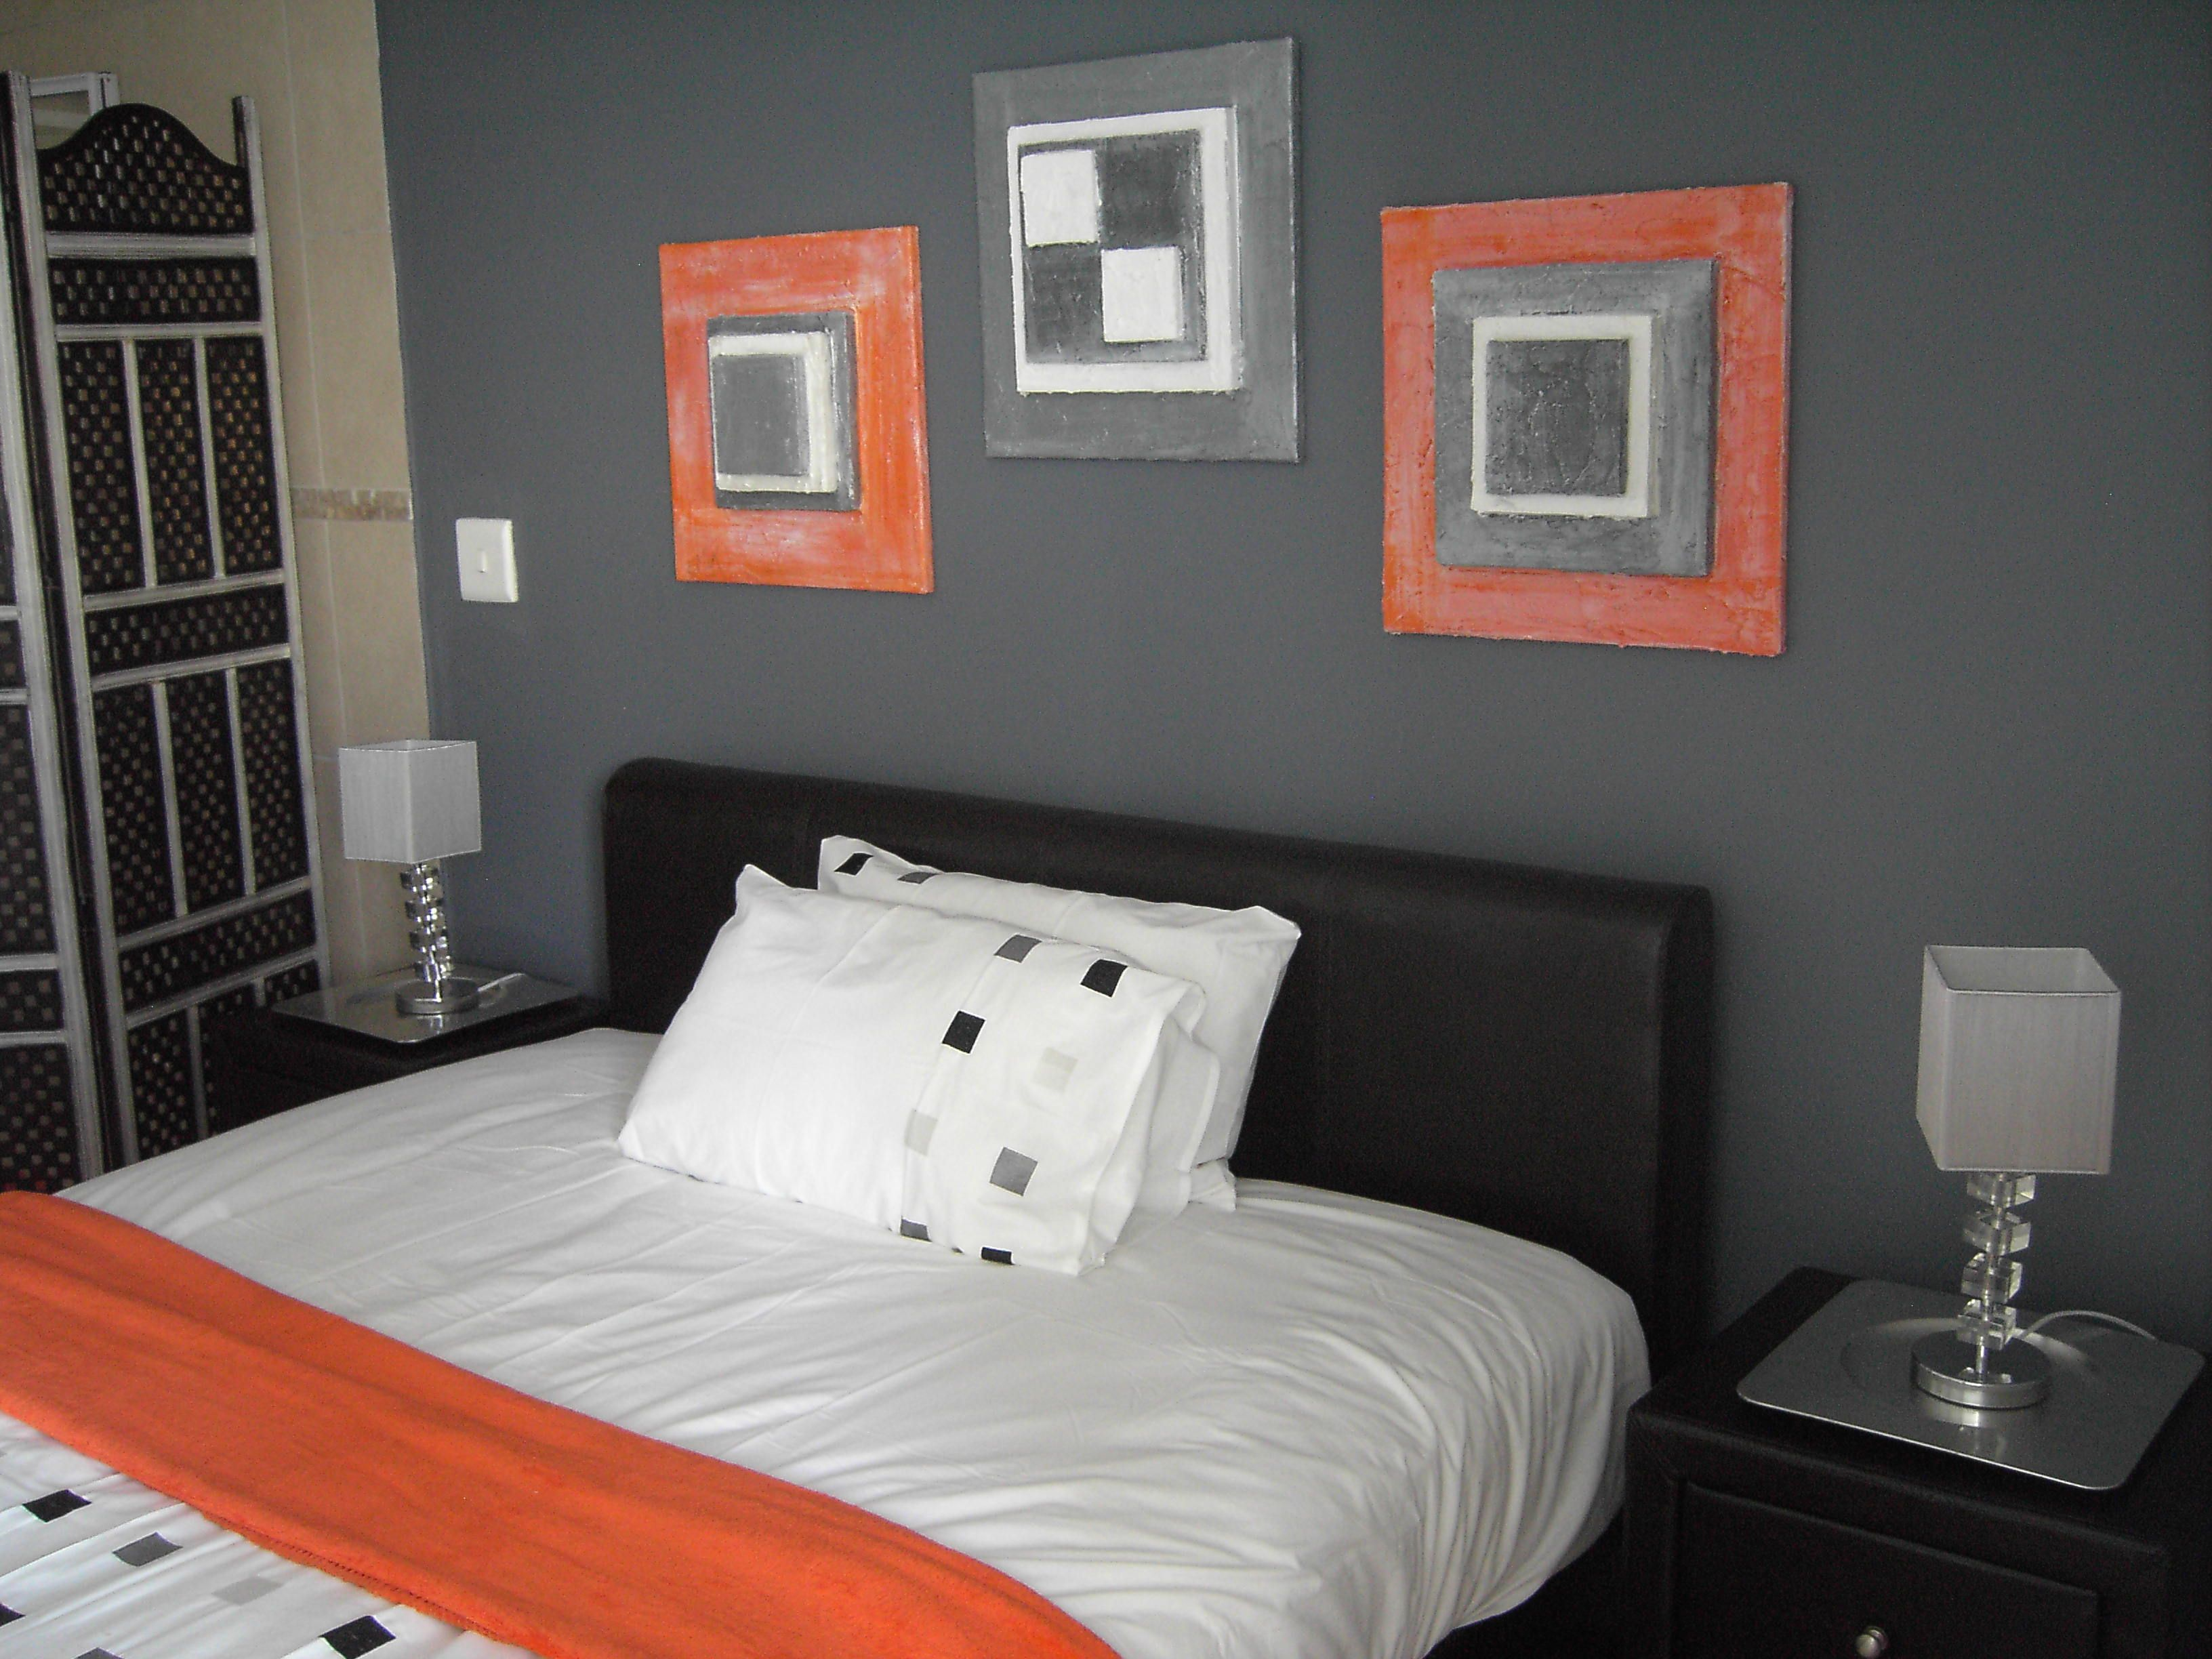 orange and grey bedroom. Love the colors. Especially like the artwork and  use of